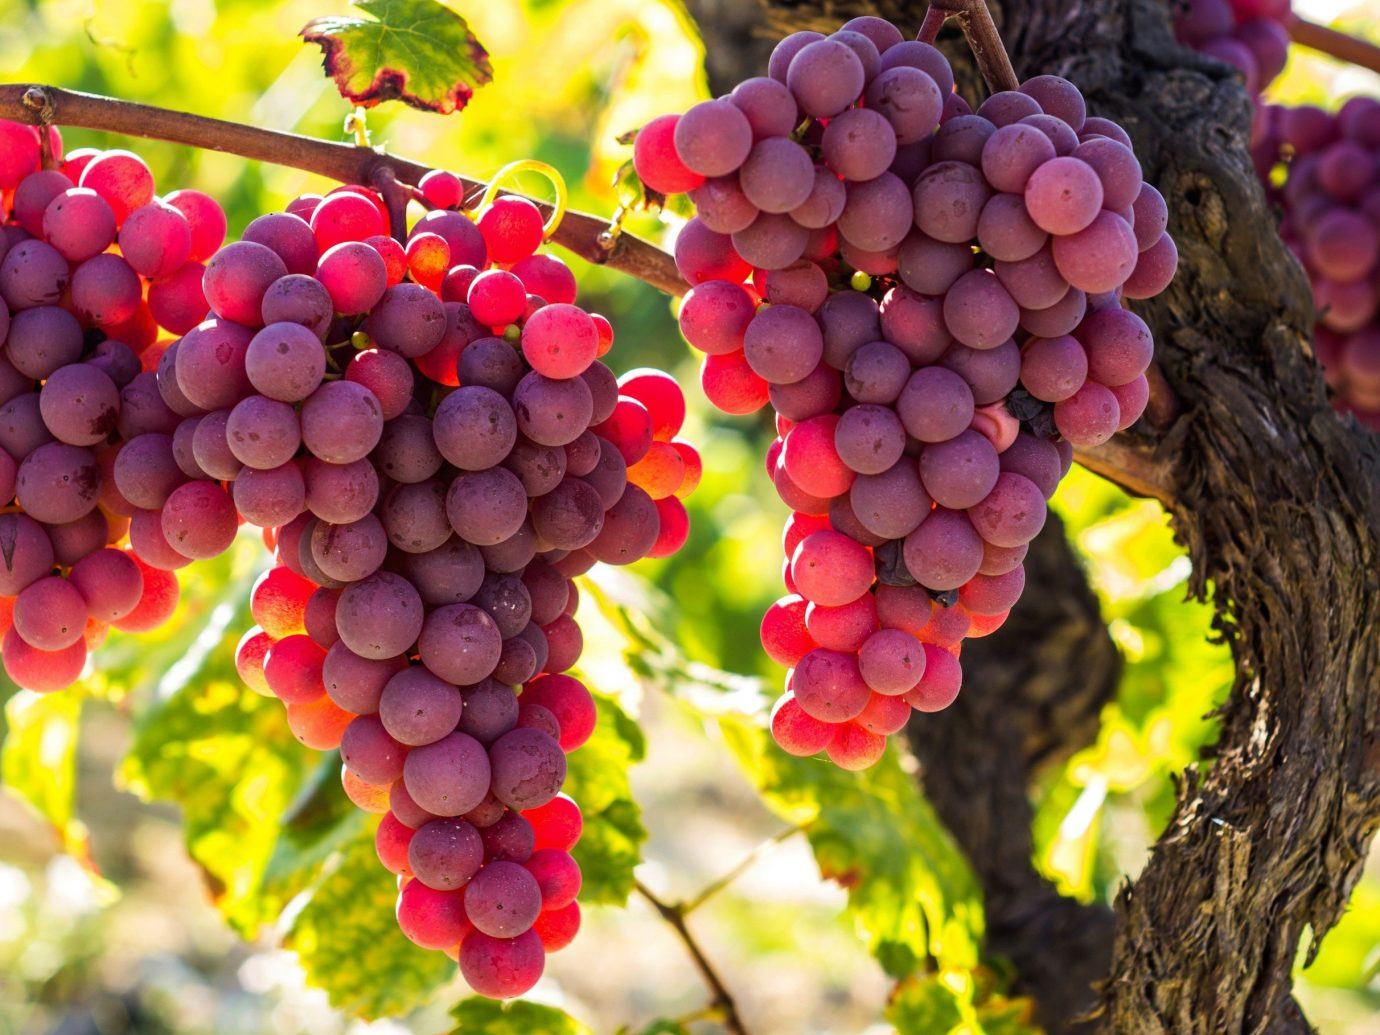 Style + Design grape food plant outdoor fruit produce vitis agriculture land plant flowering plant grapevine family flower shrub autumn colored colorful several